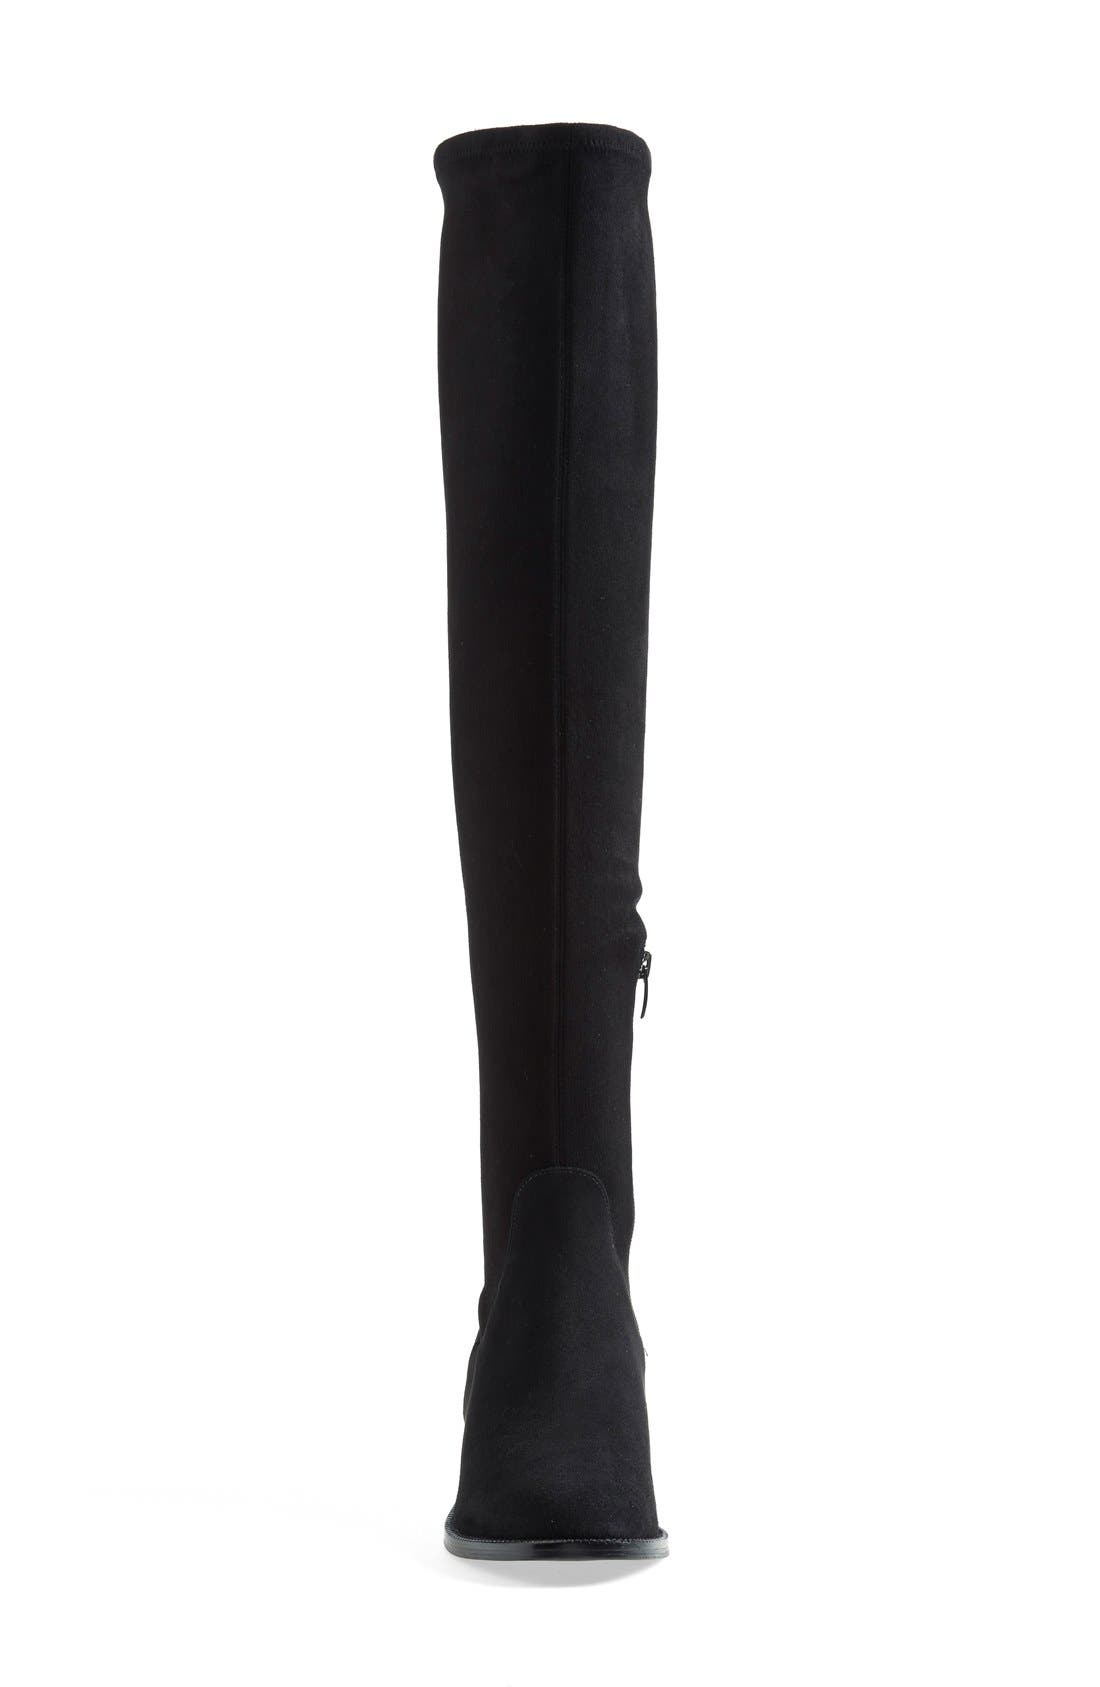 Alternate Image 3  - Via Spiga 'Boni' Over the Knee Boot (Women)